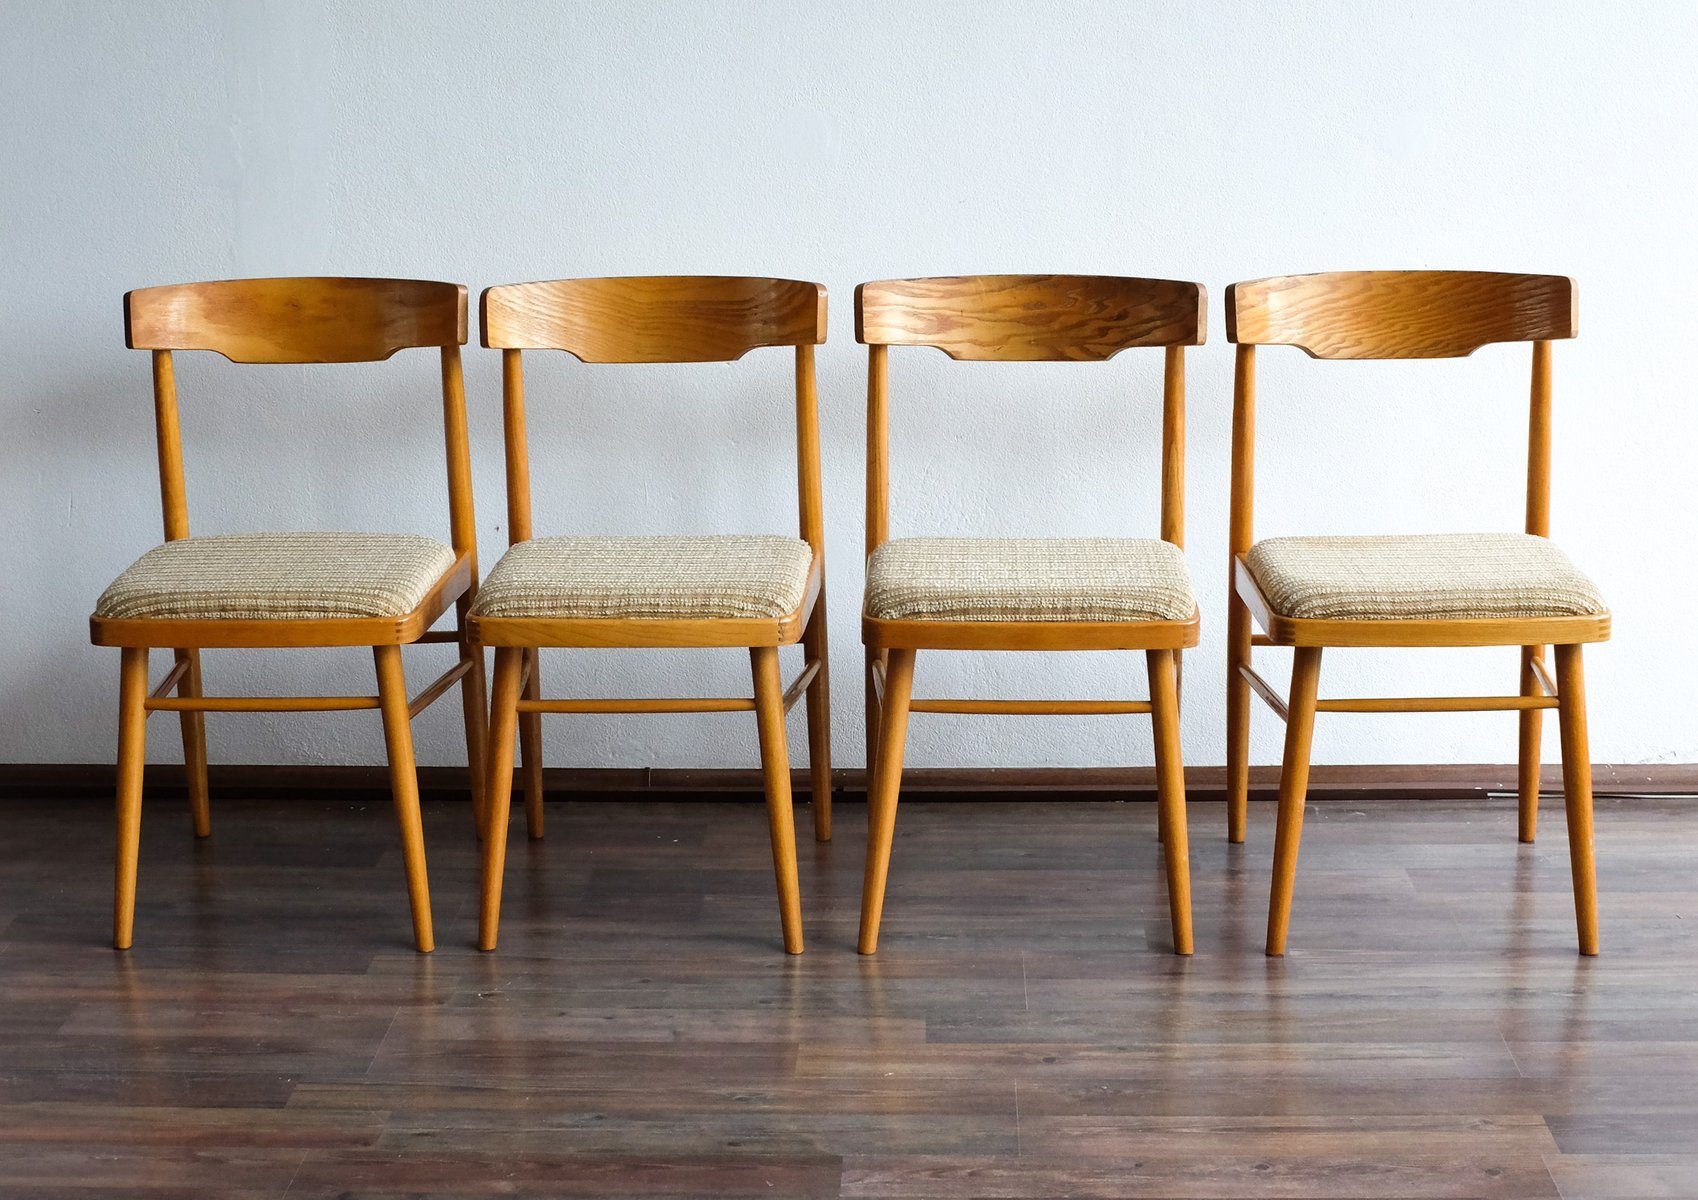 Vintage Czech Dining Chairs from TON 1960s Set of 4 for sale at